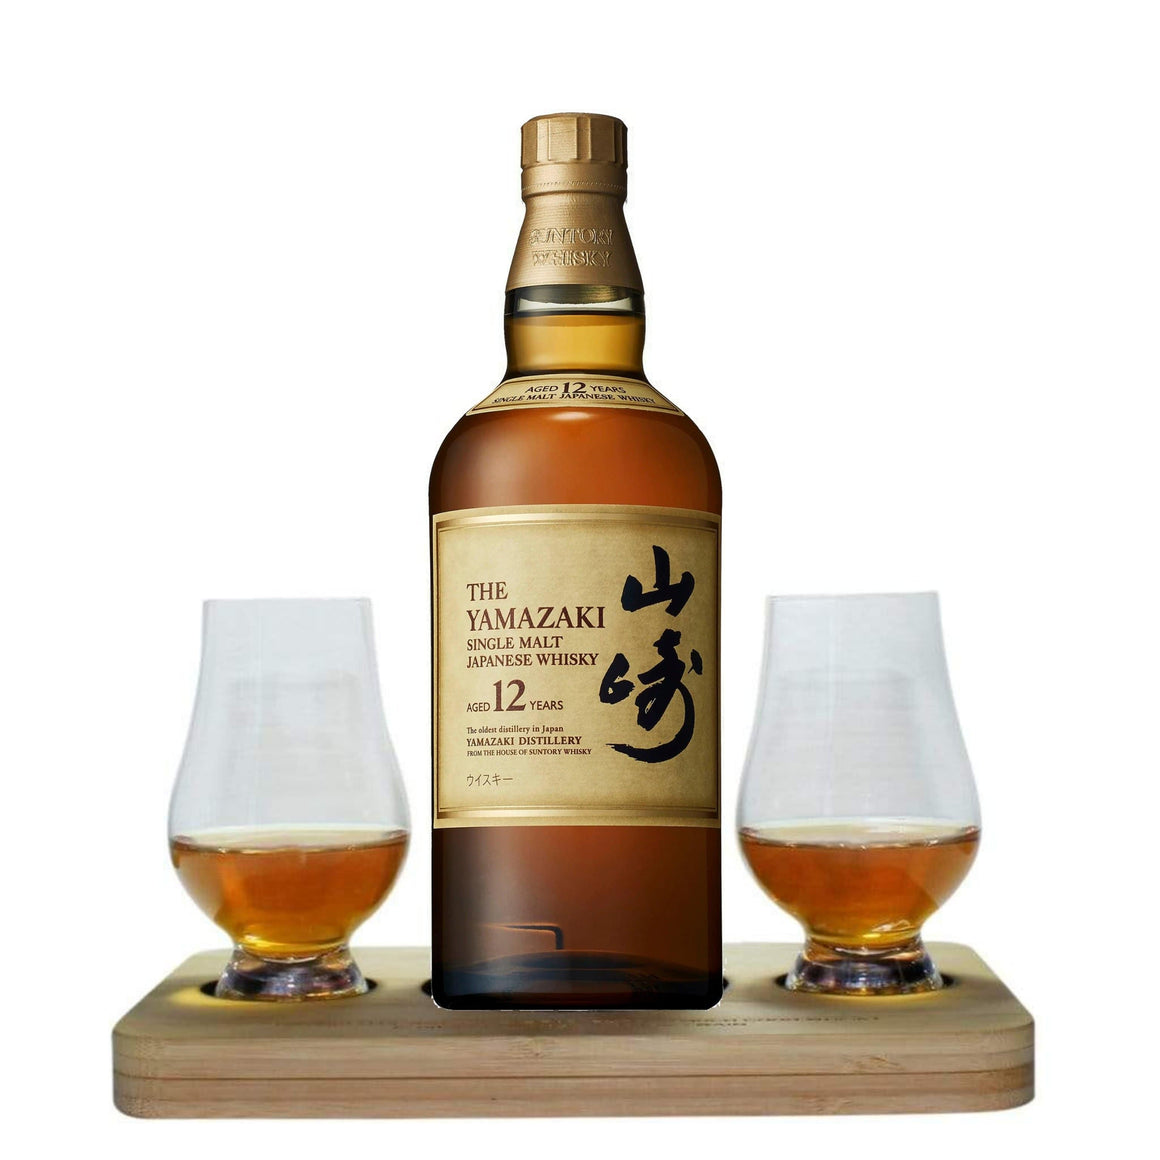 The Yamazaki 12 YO Single Malt Whisky Tasting Gift Set includes Wooden Presentation Stand plus 2 Original Glencairn Whisky Glass